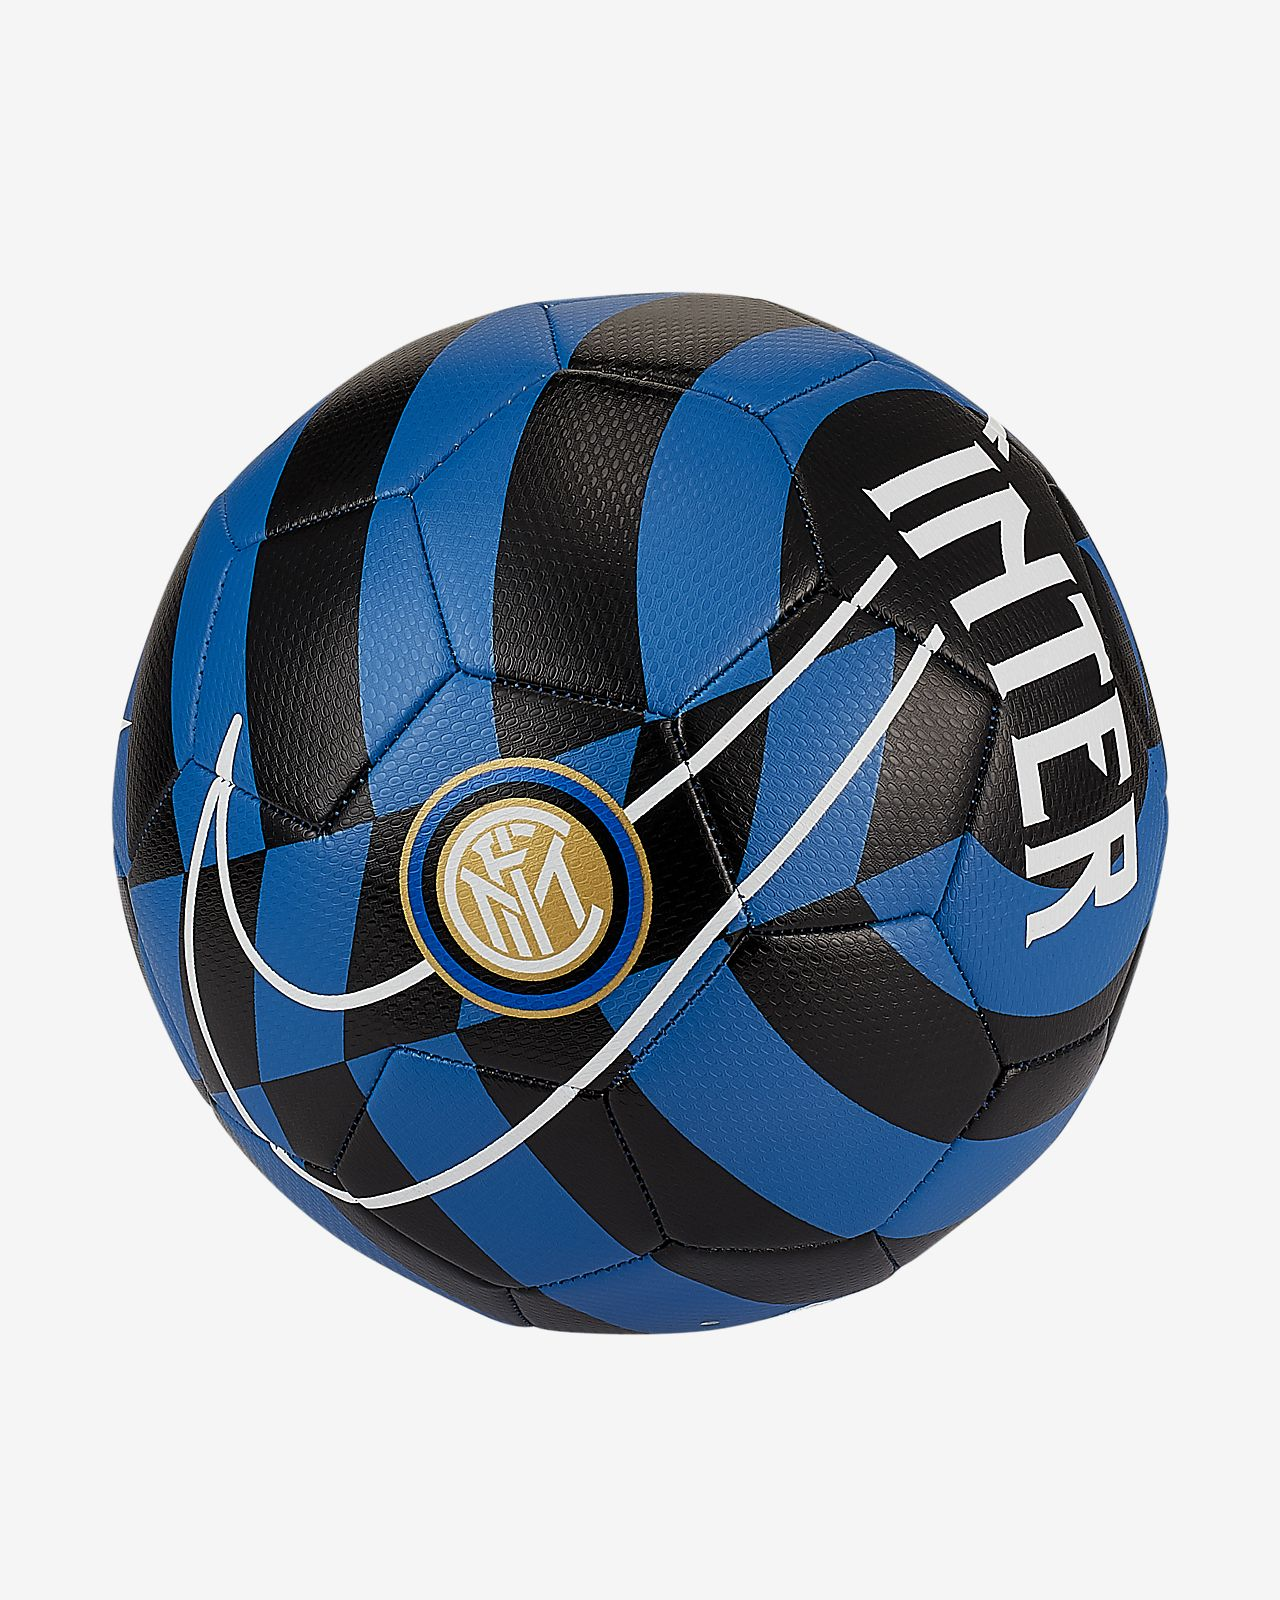 Inter Milan Prestige Football